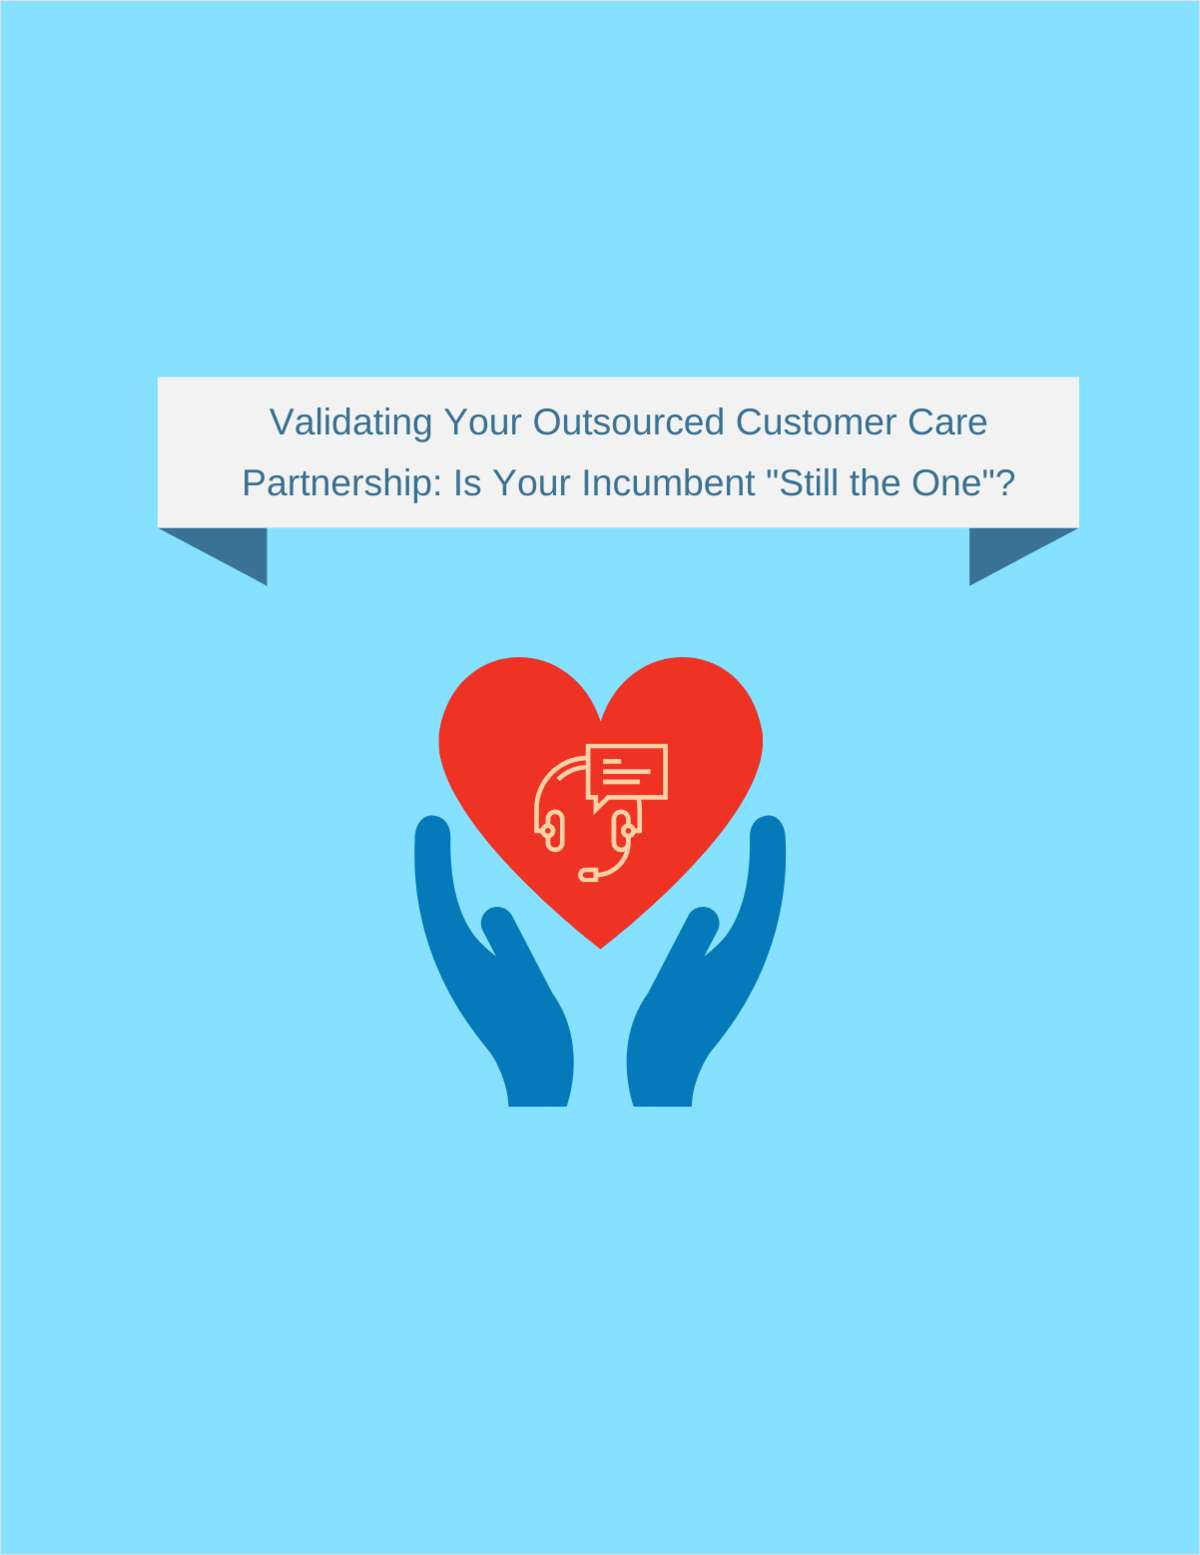 Validating Your Outsourced Customer Care Partnership: Is Your  Incumbent 'Still the One'?